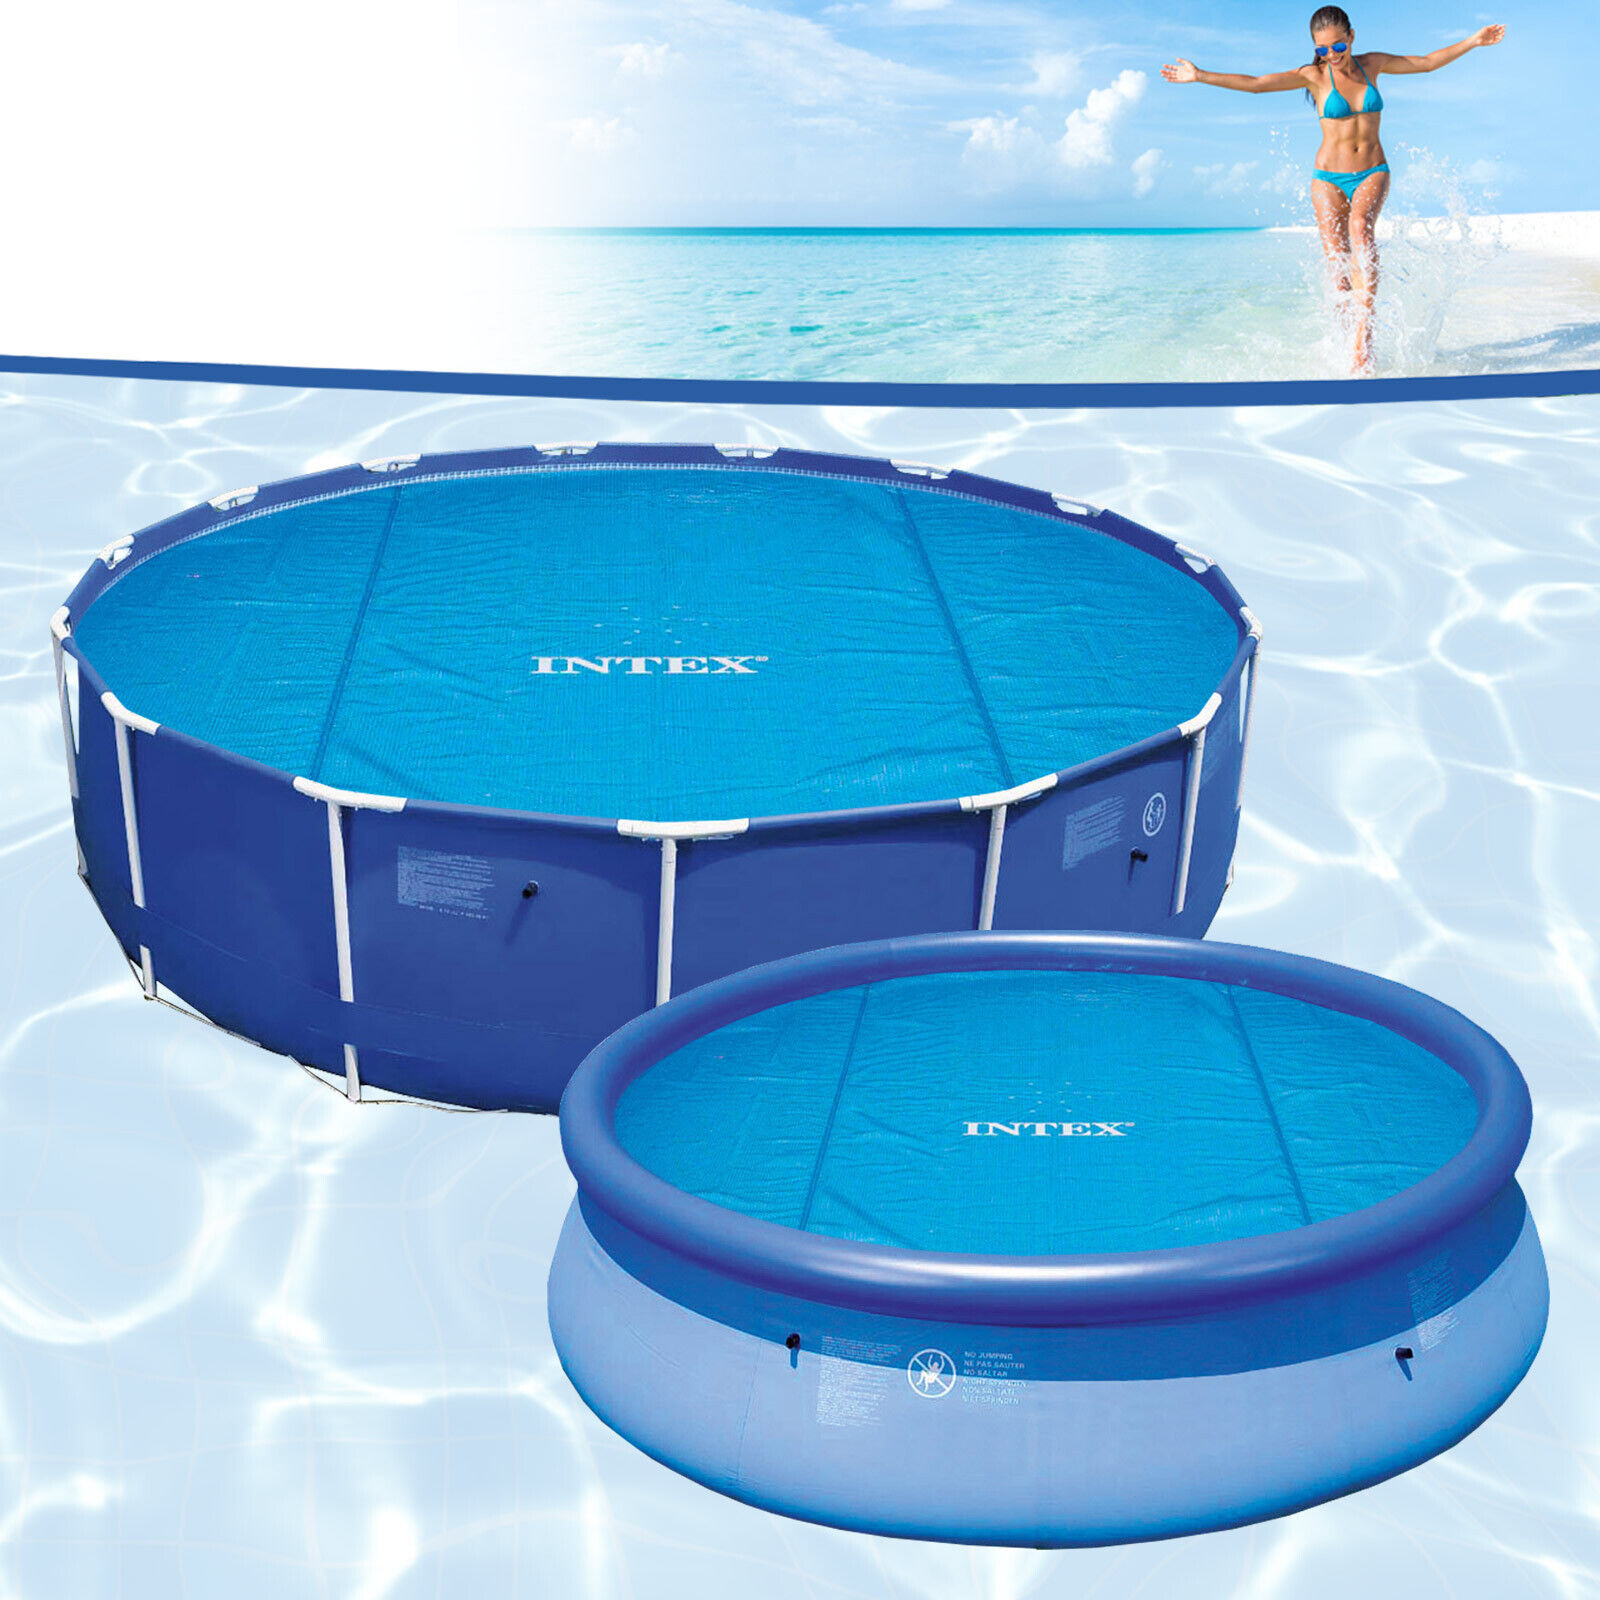 Solarfolie Pool Amazon Intex 549 Pool Solarfolie Solarplane Solarheizung Blau Poolheizung